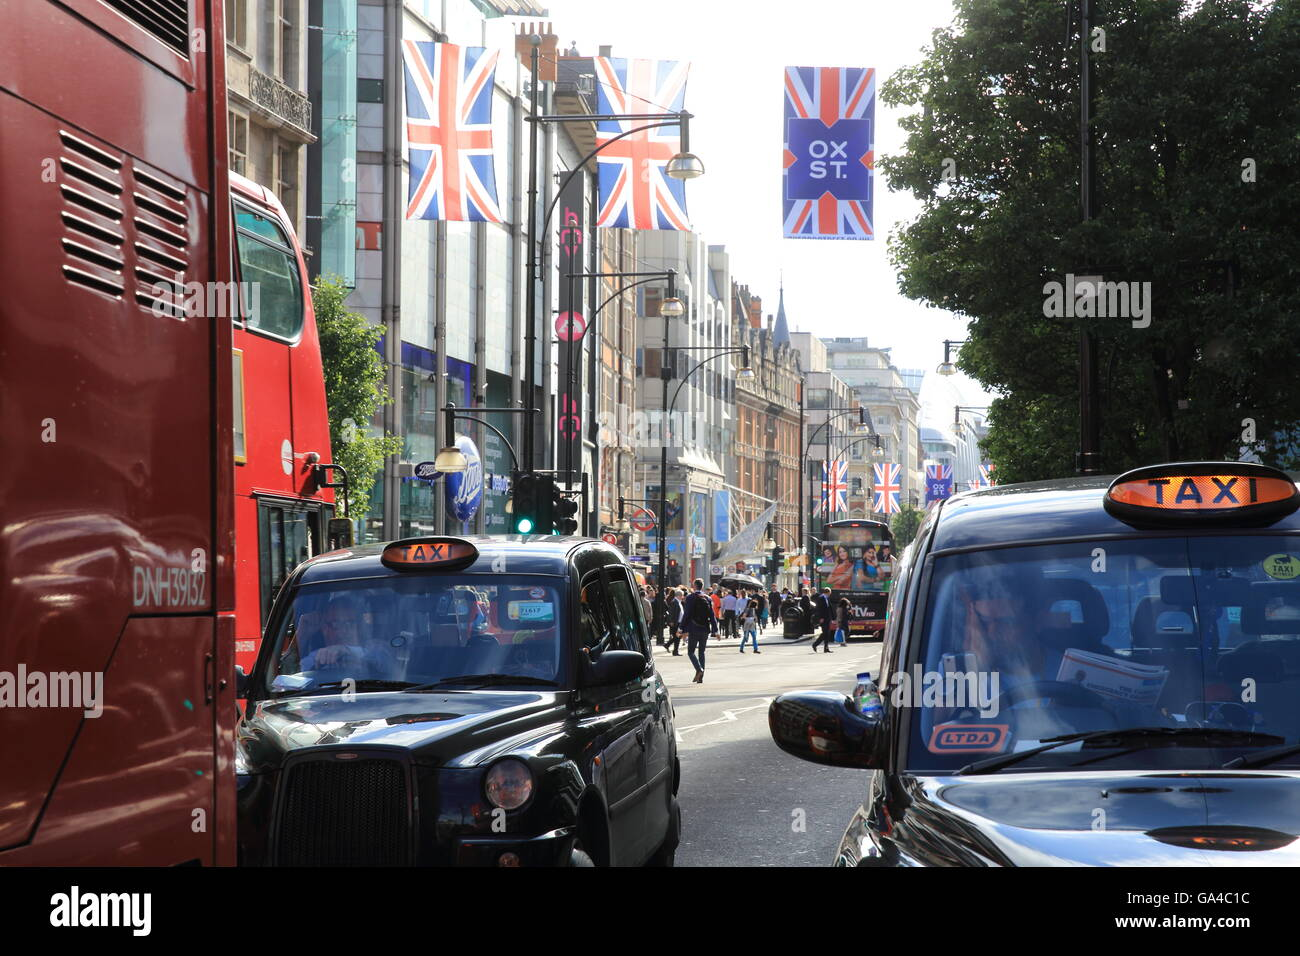 Oxford Street in London's West End, to be pedestrianized by 2020, as decided by Mayor Sadiq Khan, in England, - Stock Image